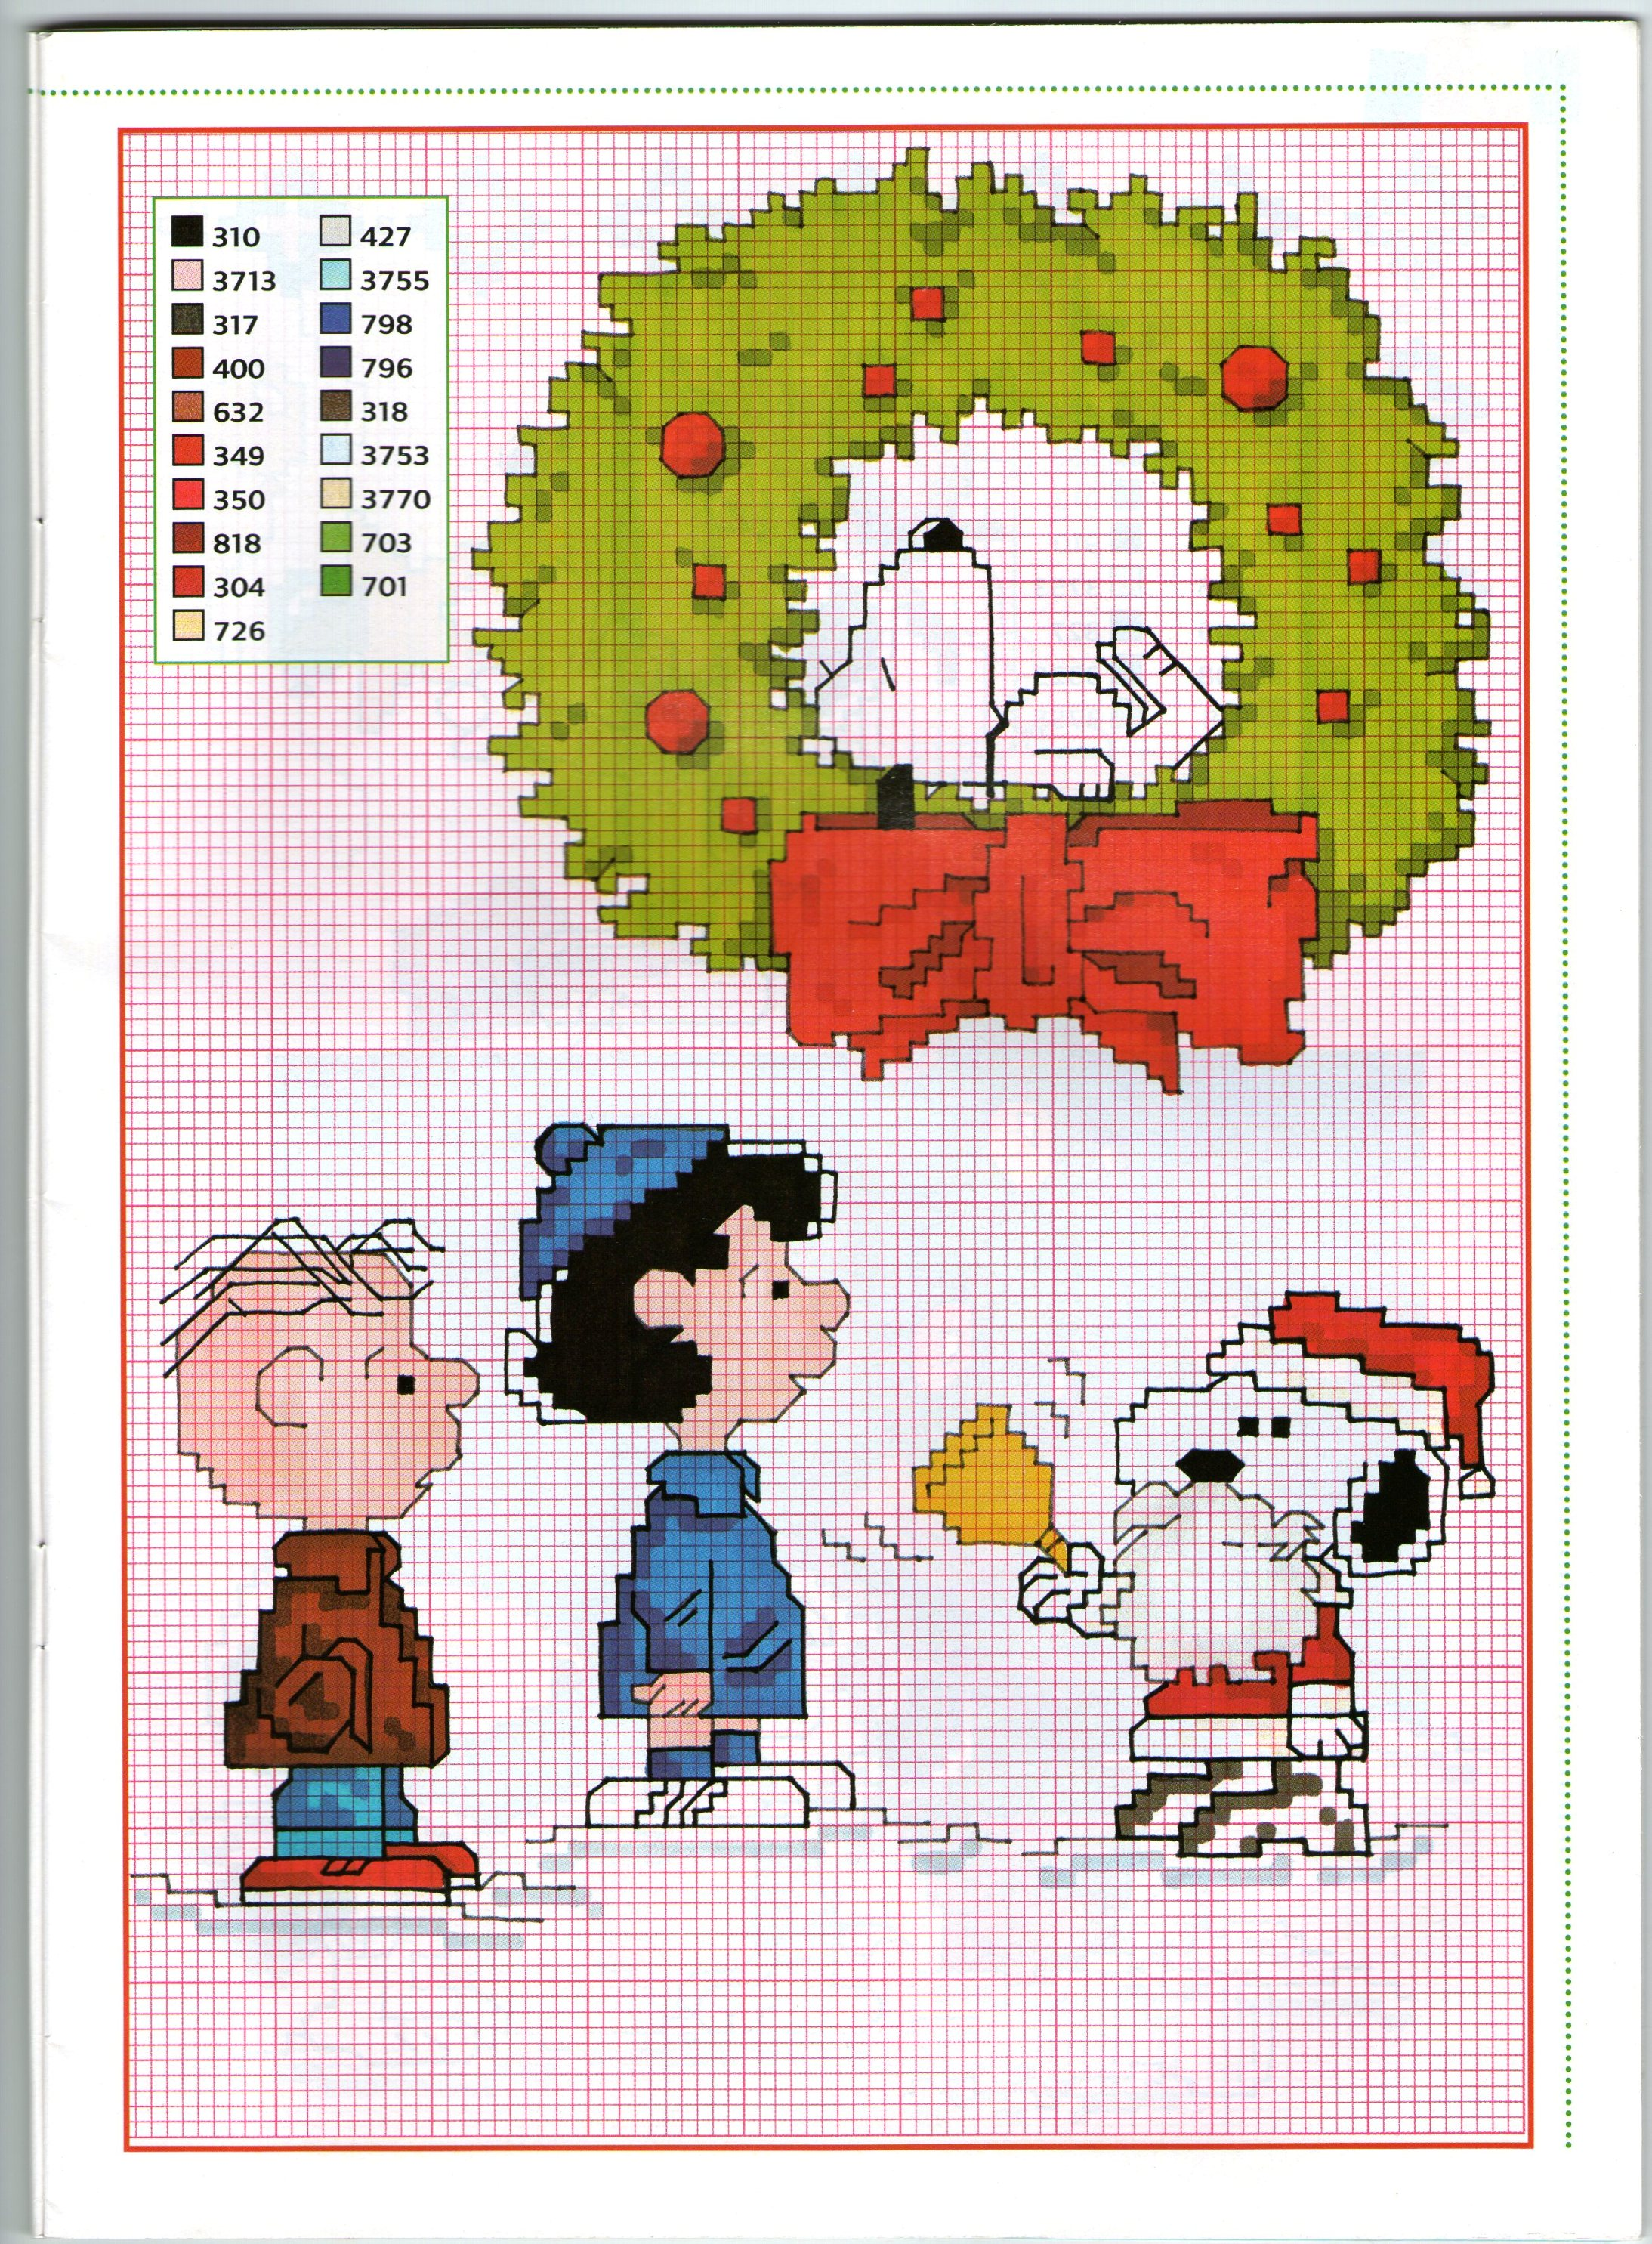 Immagini Natale Snoopy.Charlie Brown Lucy E Snoopy Babbo Natale Schema Punto Croce